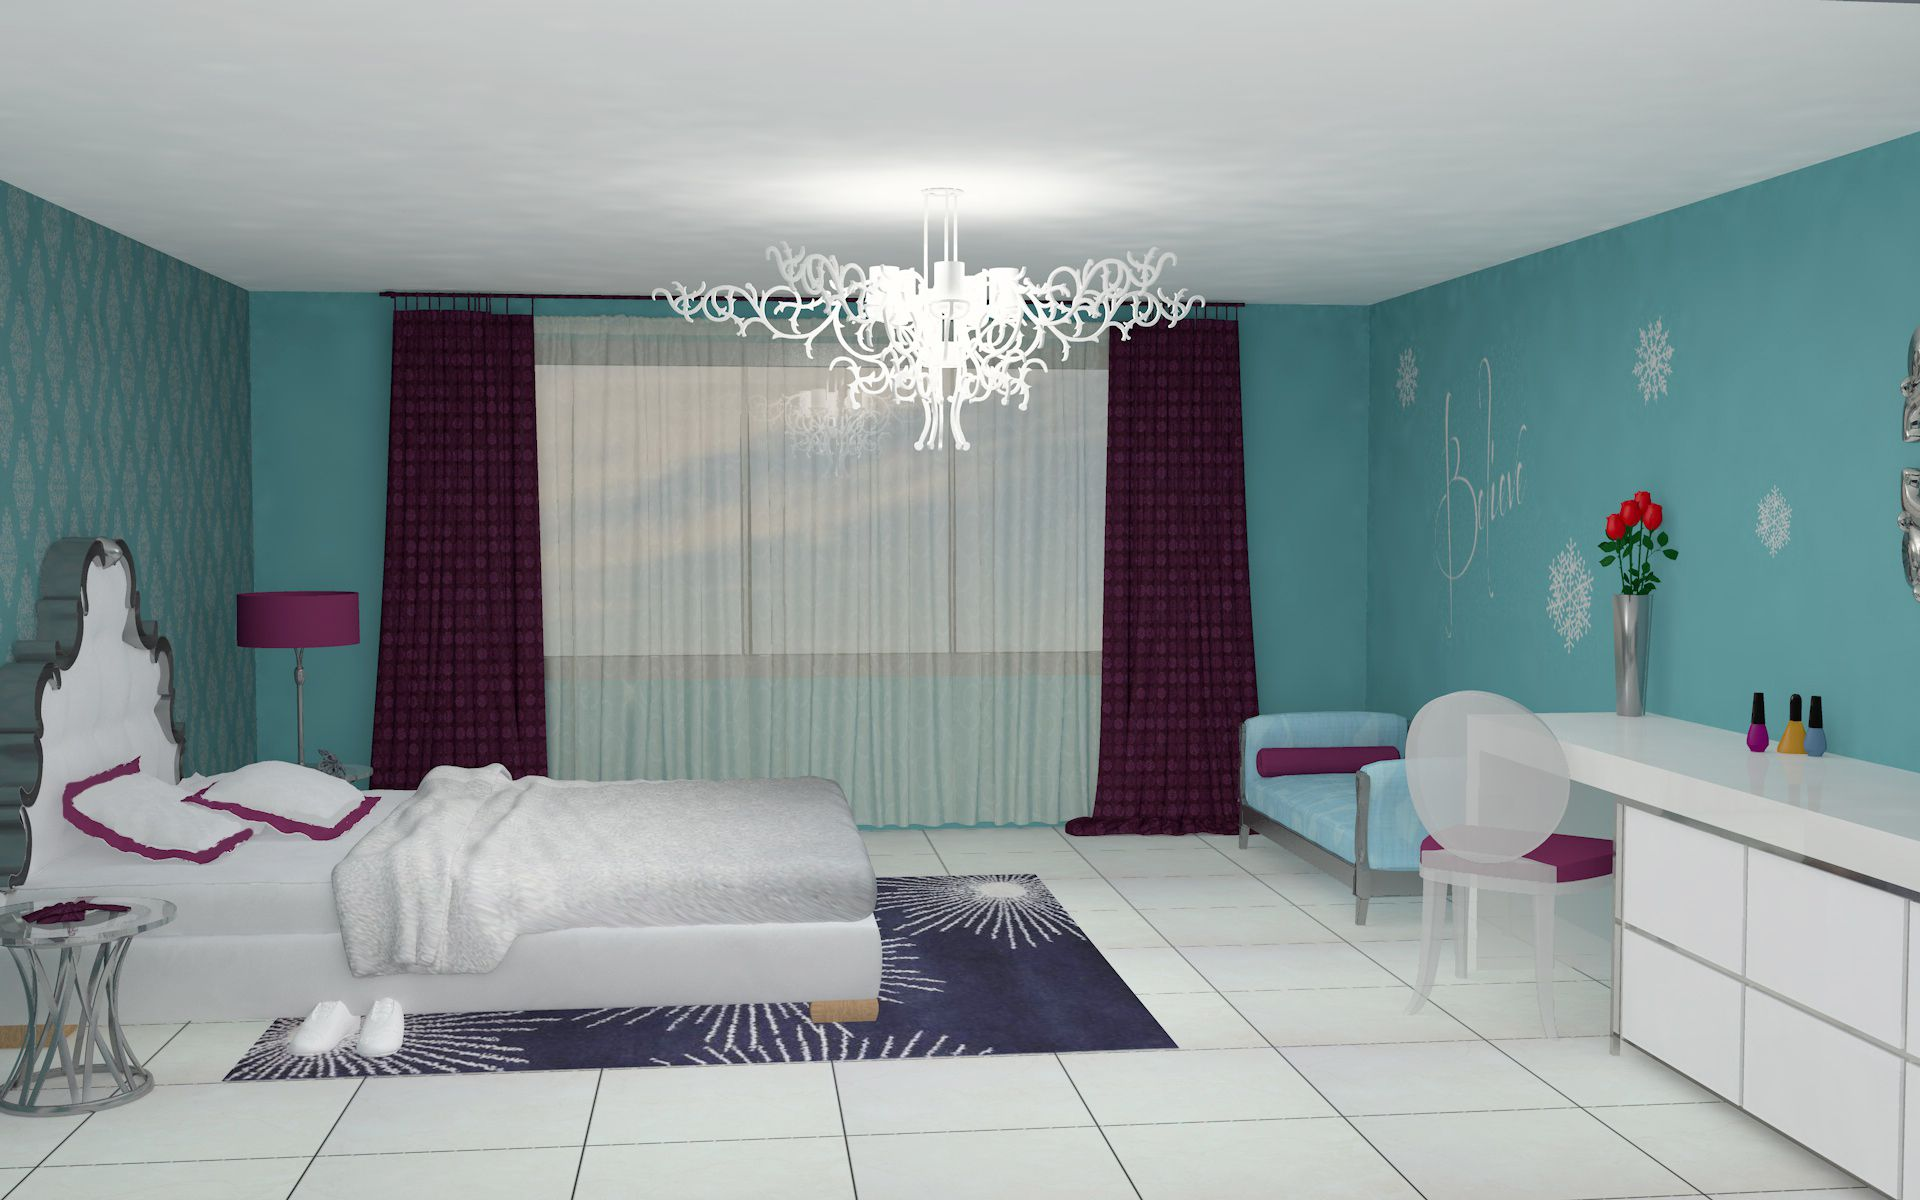 1000 images about bedroom on pinterest snowflakes art decor and light switches